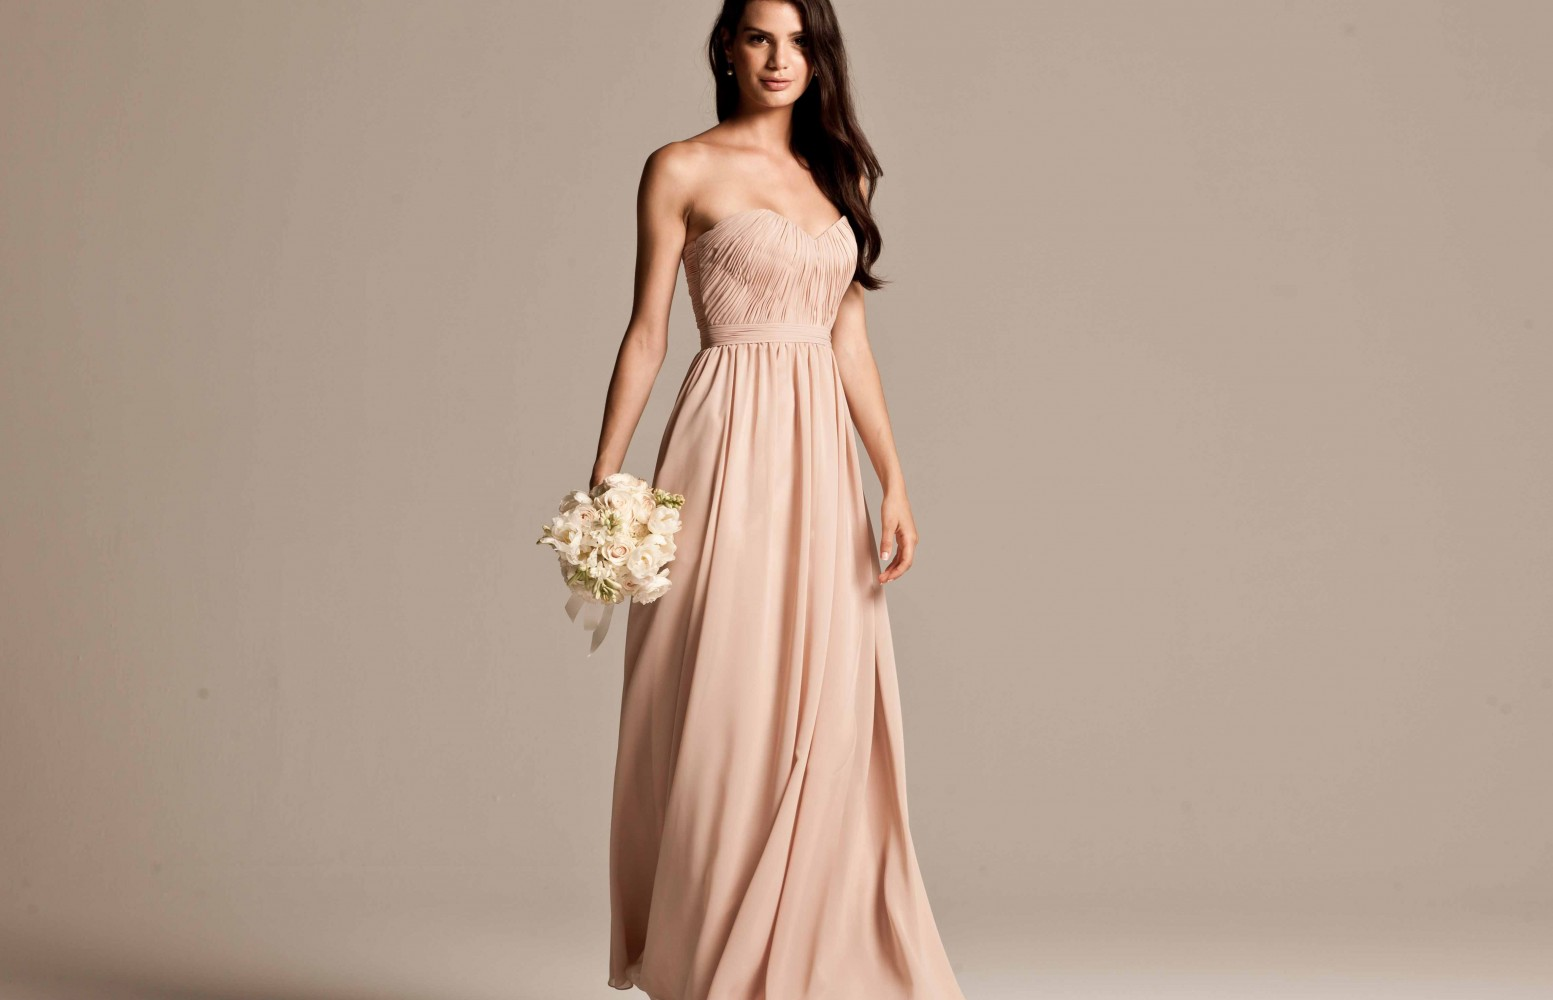 Of Dresses For Brides Bridesmaids 85